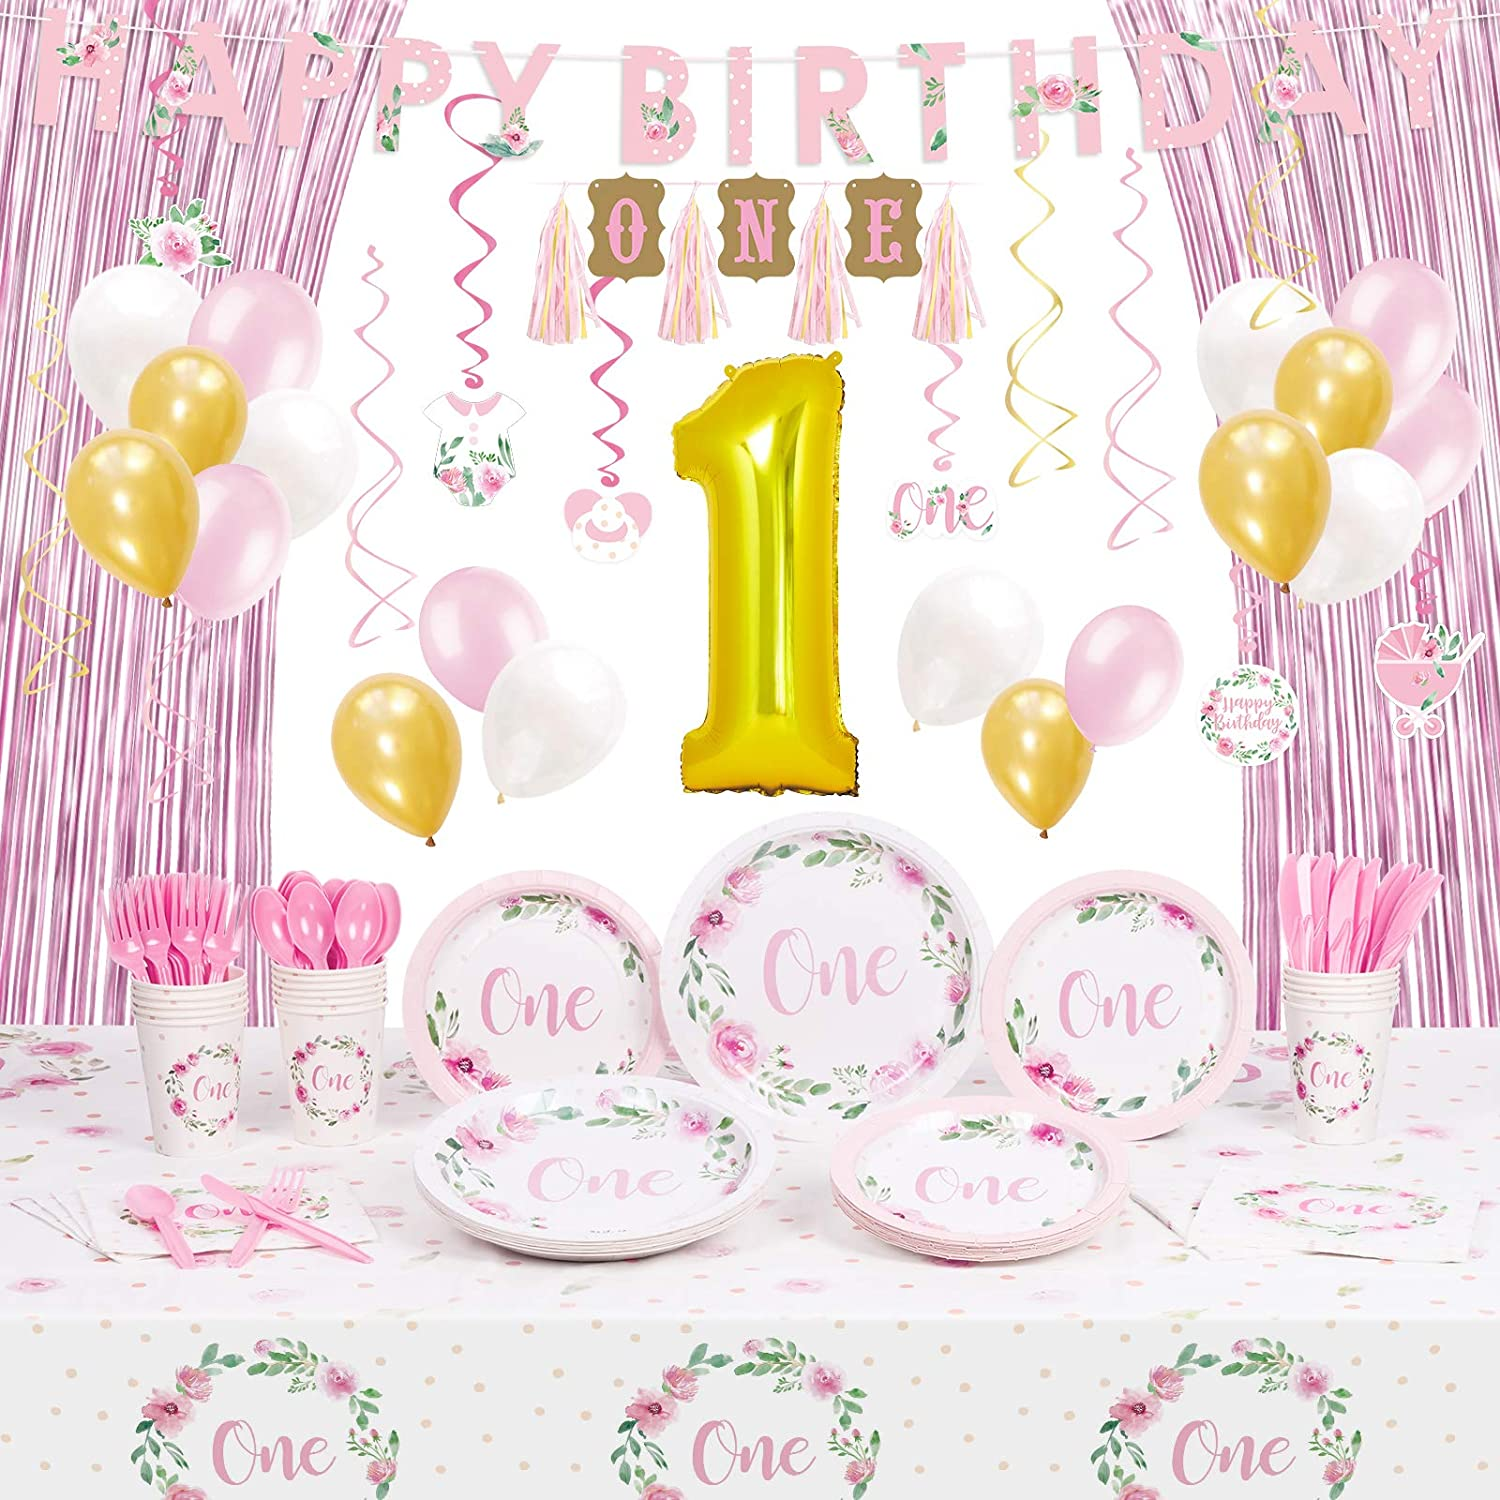 Decorlife First Birthday Decorations for Girls, Baby 1st Birthday Party Plates and Napkins for 16, High Chair Decoration, 32